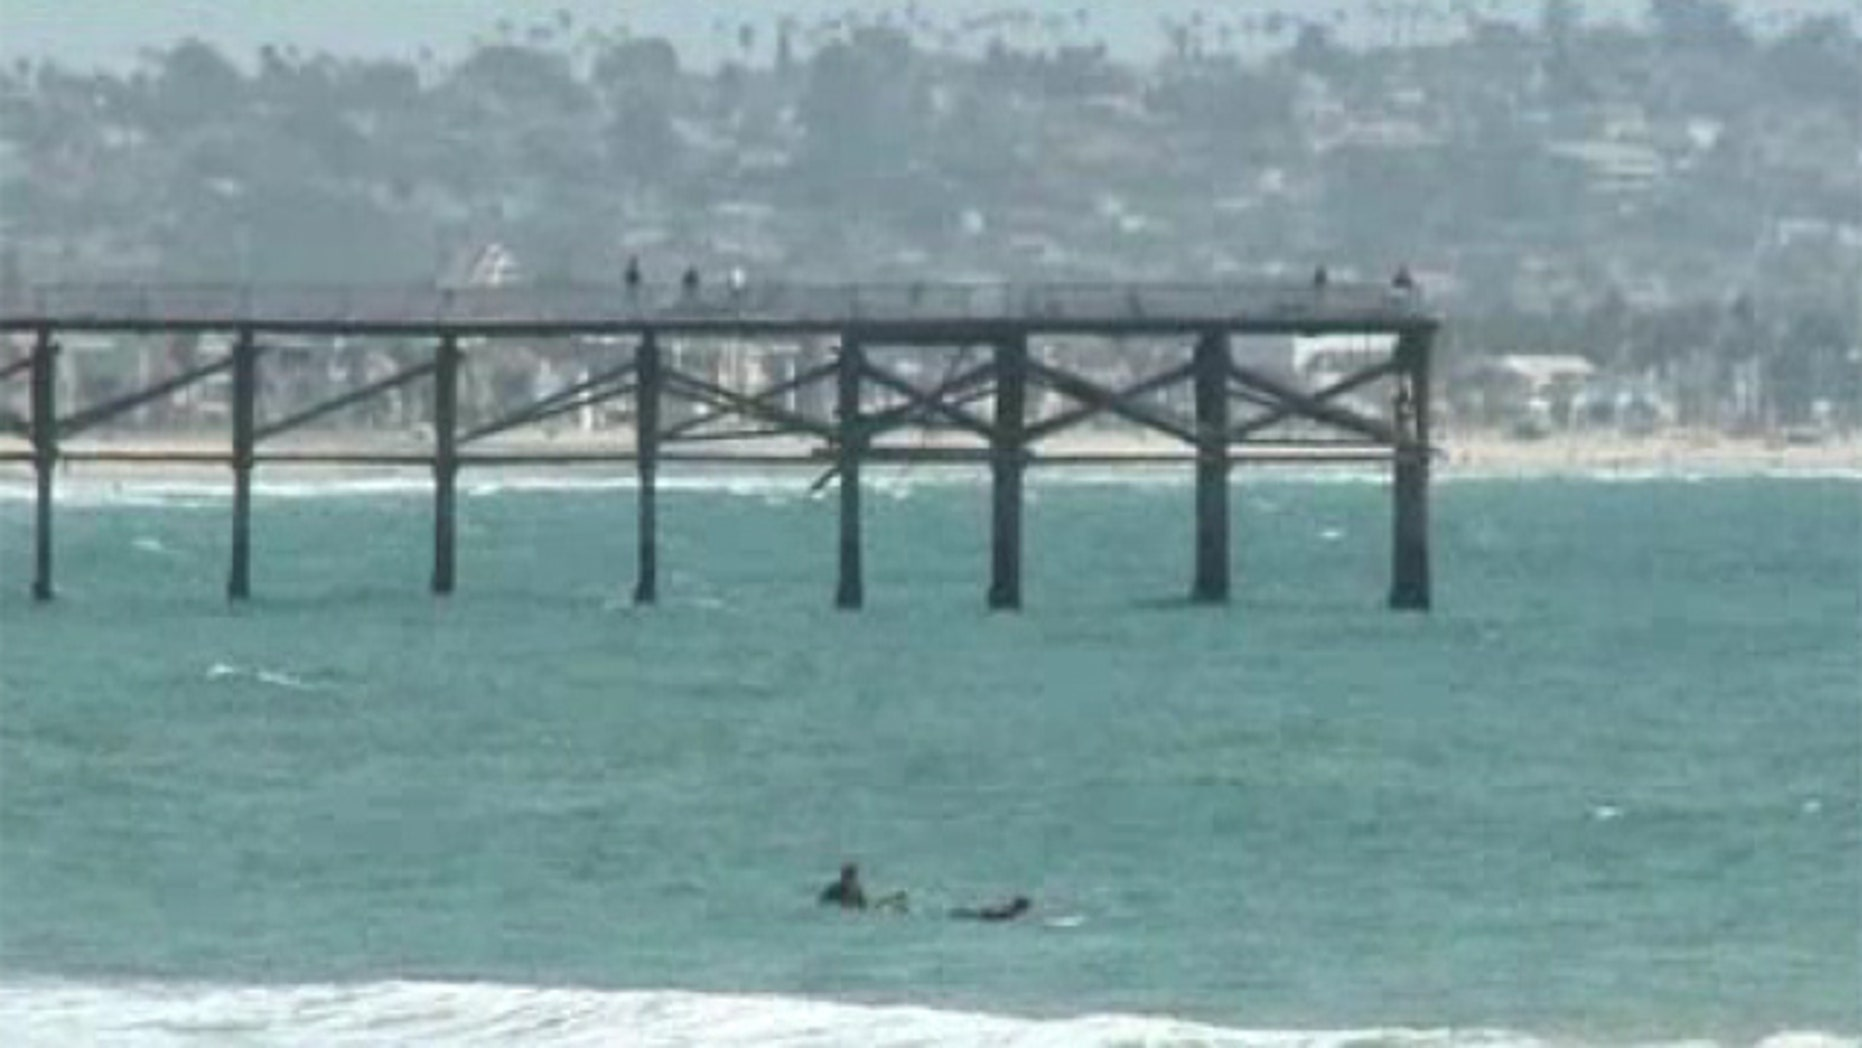 May 9, 2013: A 42-year-old was found dead after going surfing at San Diego's Pacific Beach.